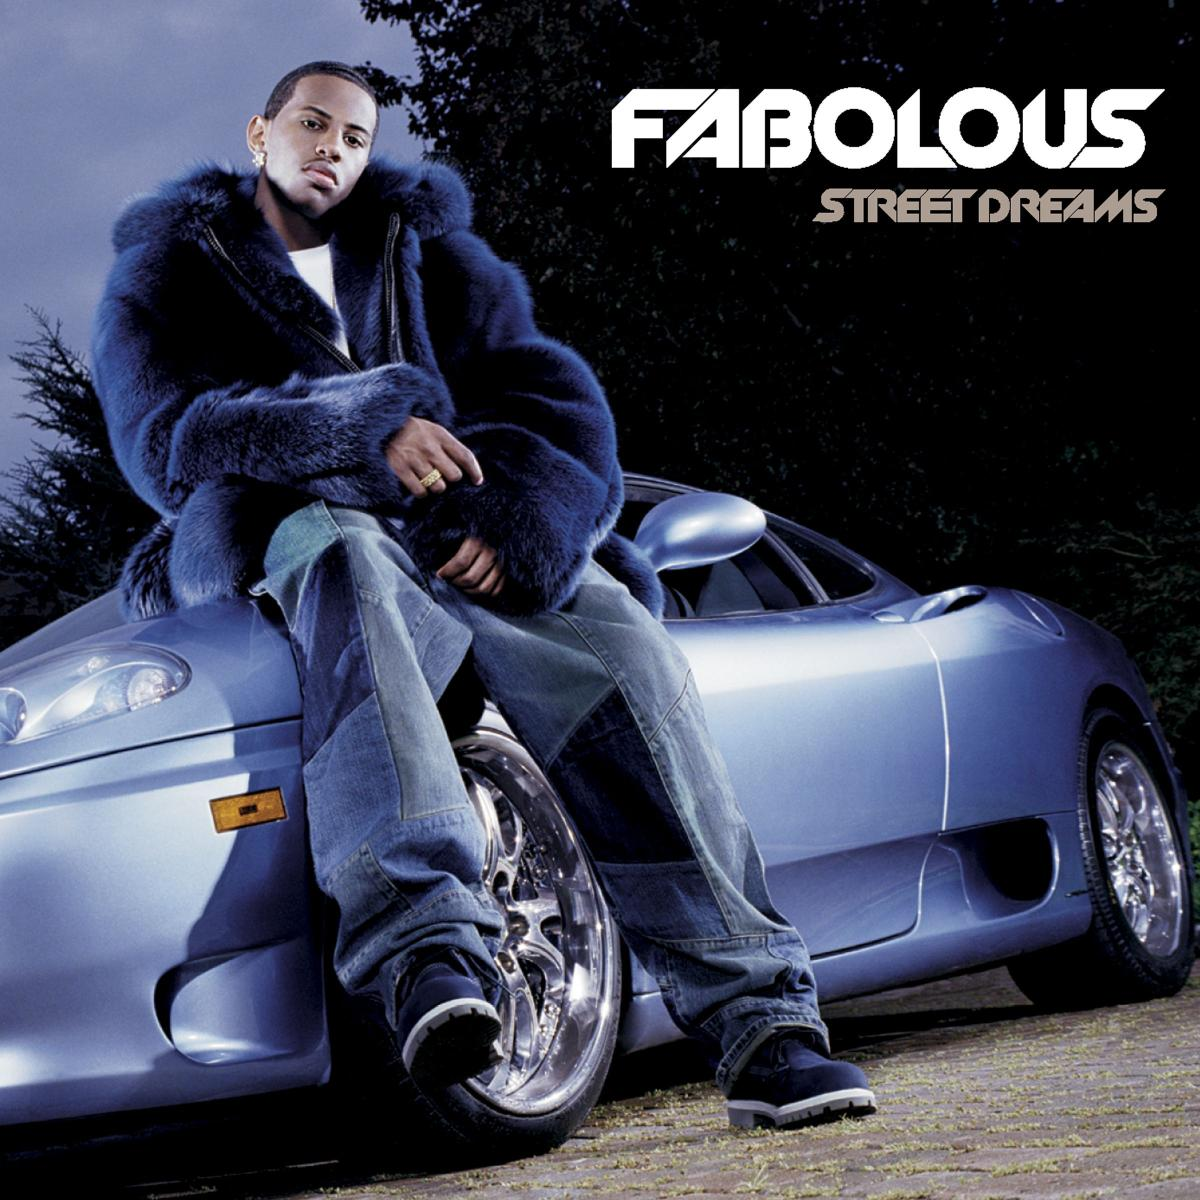 Into You by Fabolous, Ashanti